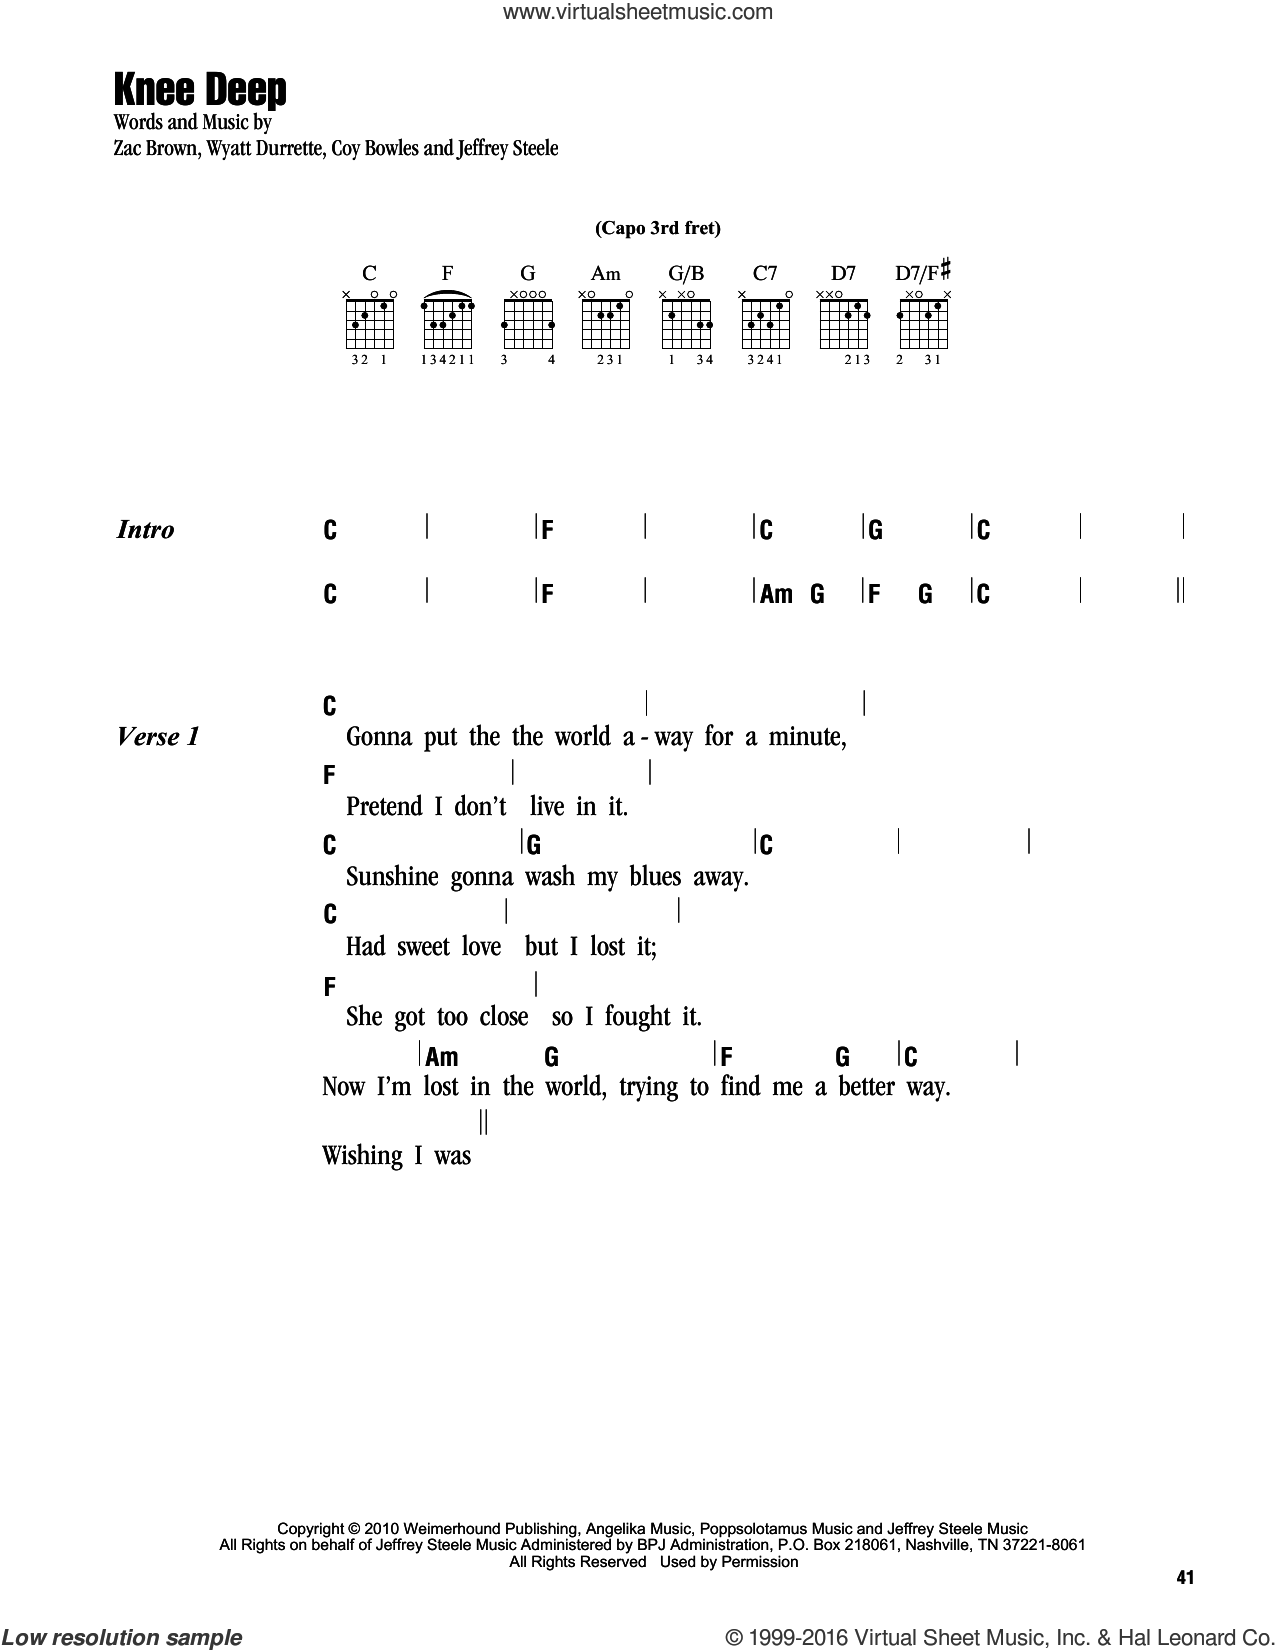 Knee Deep sheet music for guitar (chords) by Zac Brown, Jeffrey Steele and Wyatt Durrette. Score Image Preview.